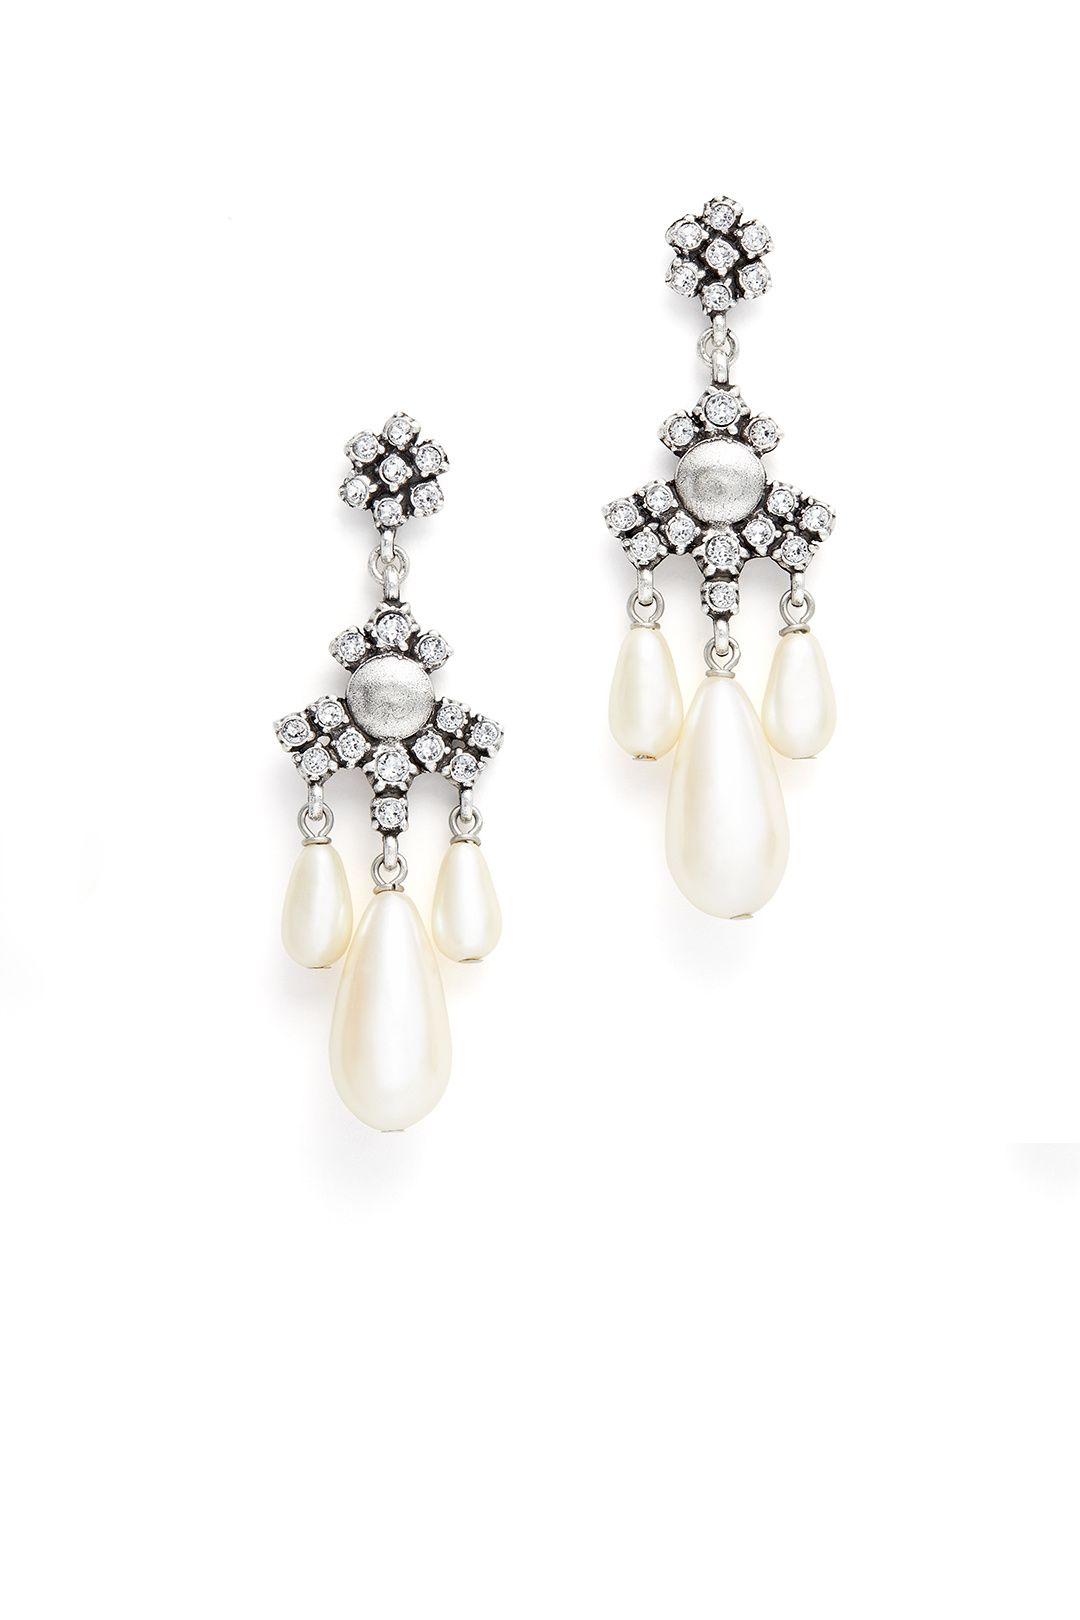 Buy Garden Soiree Earrings by Gerard Yosca for $45 from Rent the Runway.